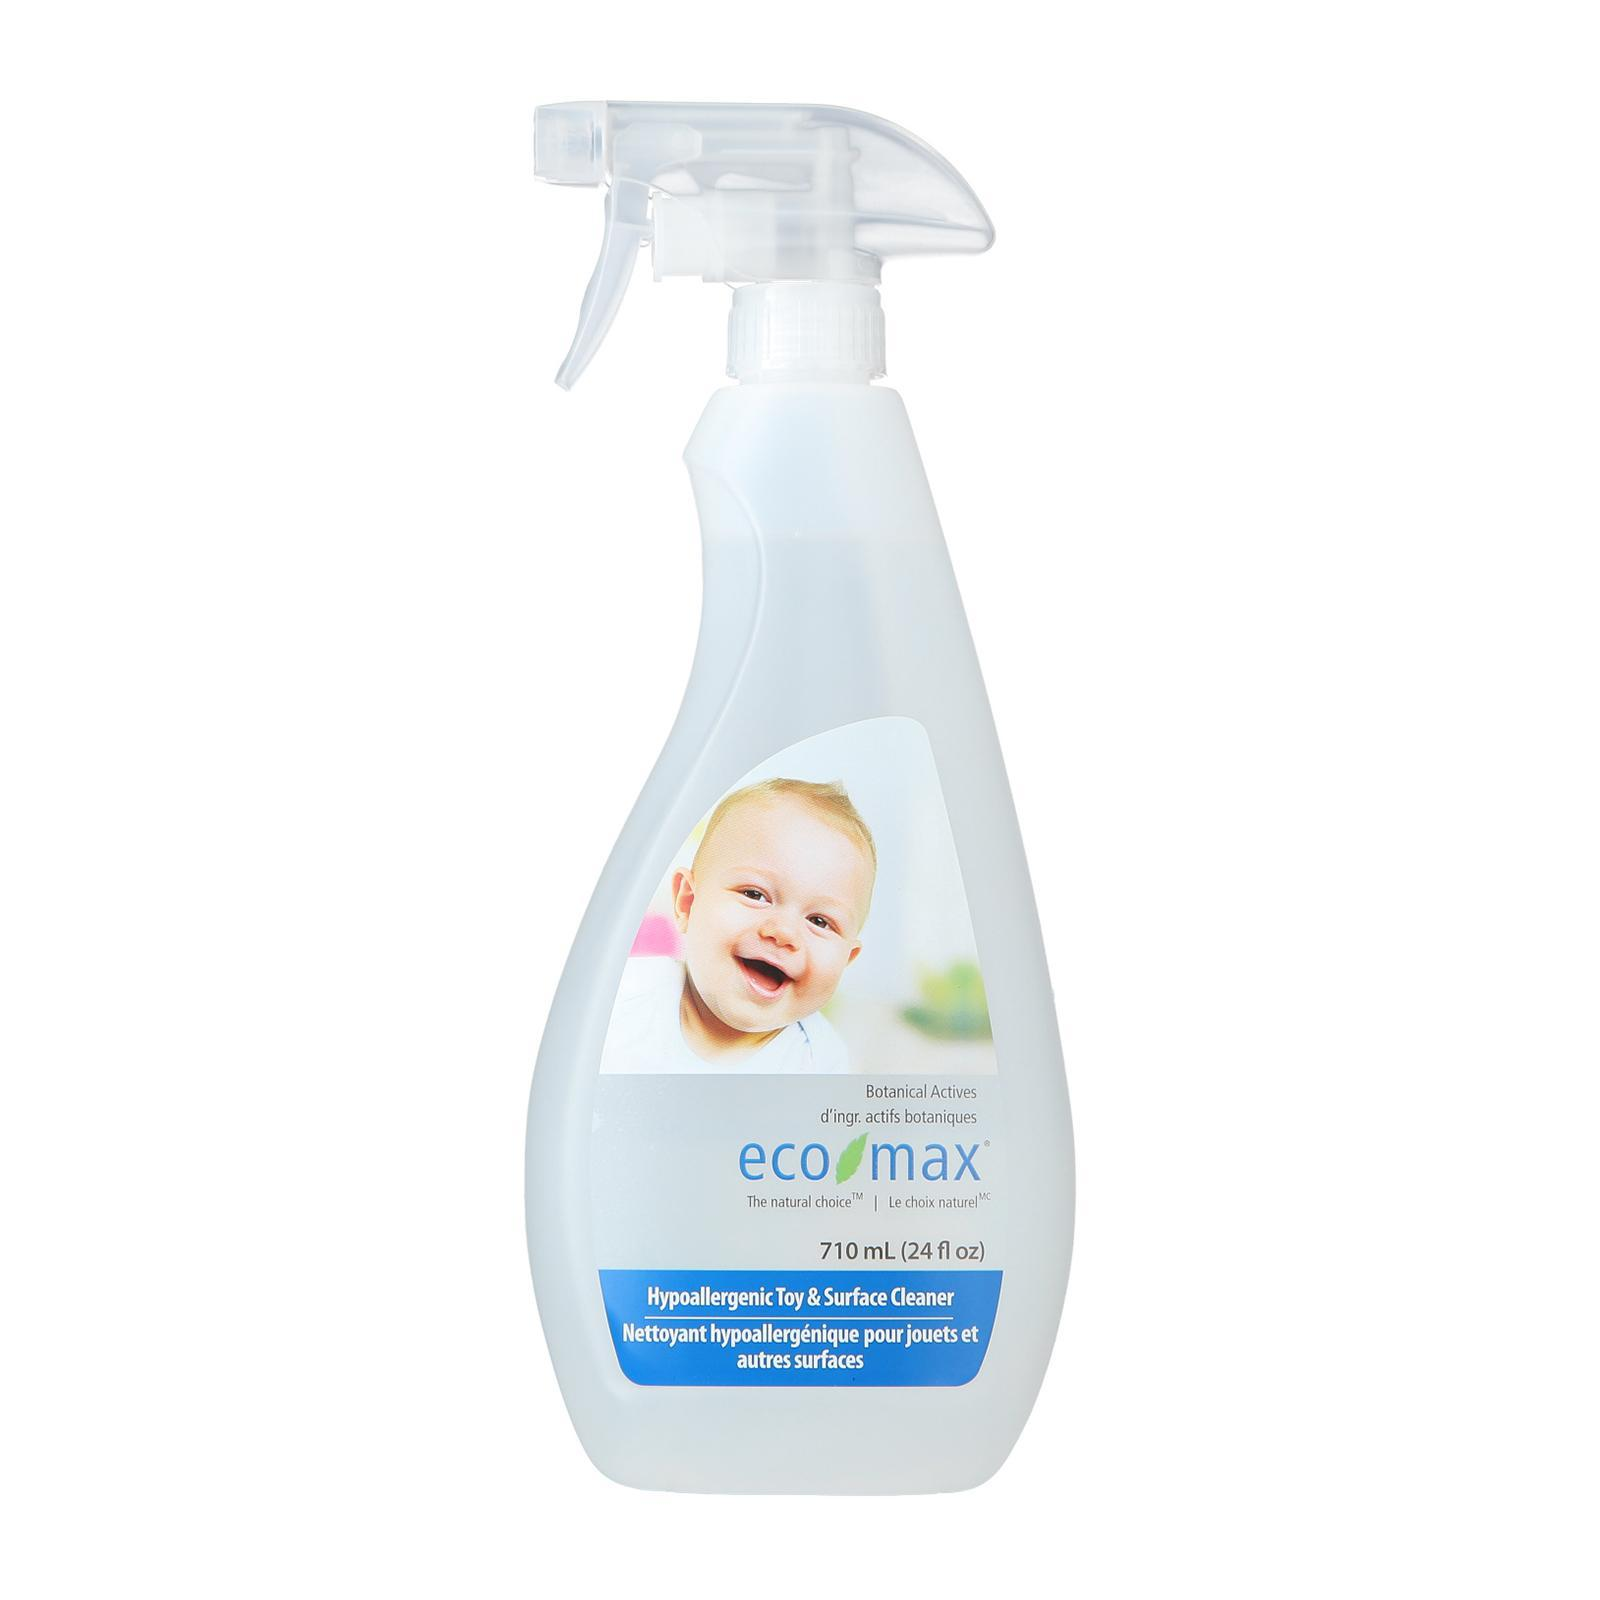 ECO-MAX Hypoallergenic Toy And Surface Cleaner - By Wholesome Harvest